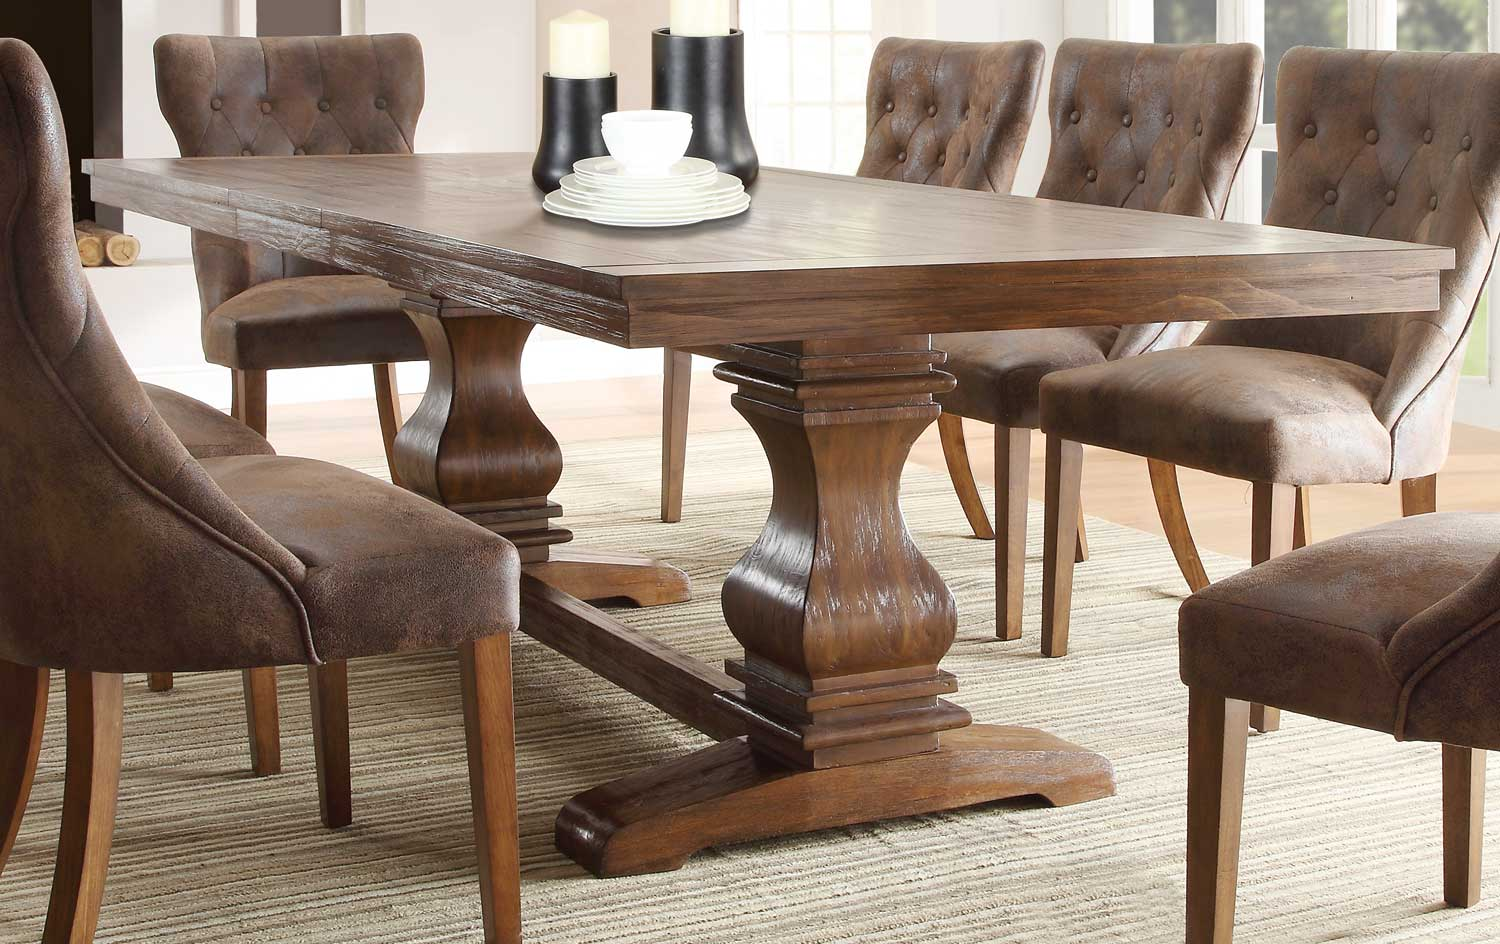 Homelegance marie louise dining set rustic oak brown for Dining room furniture